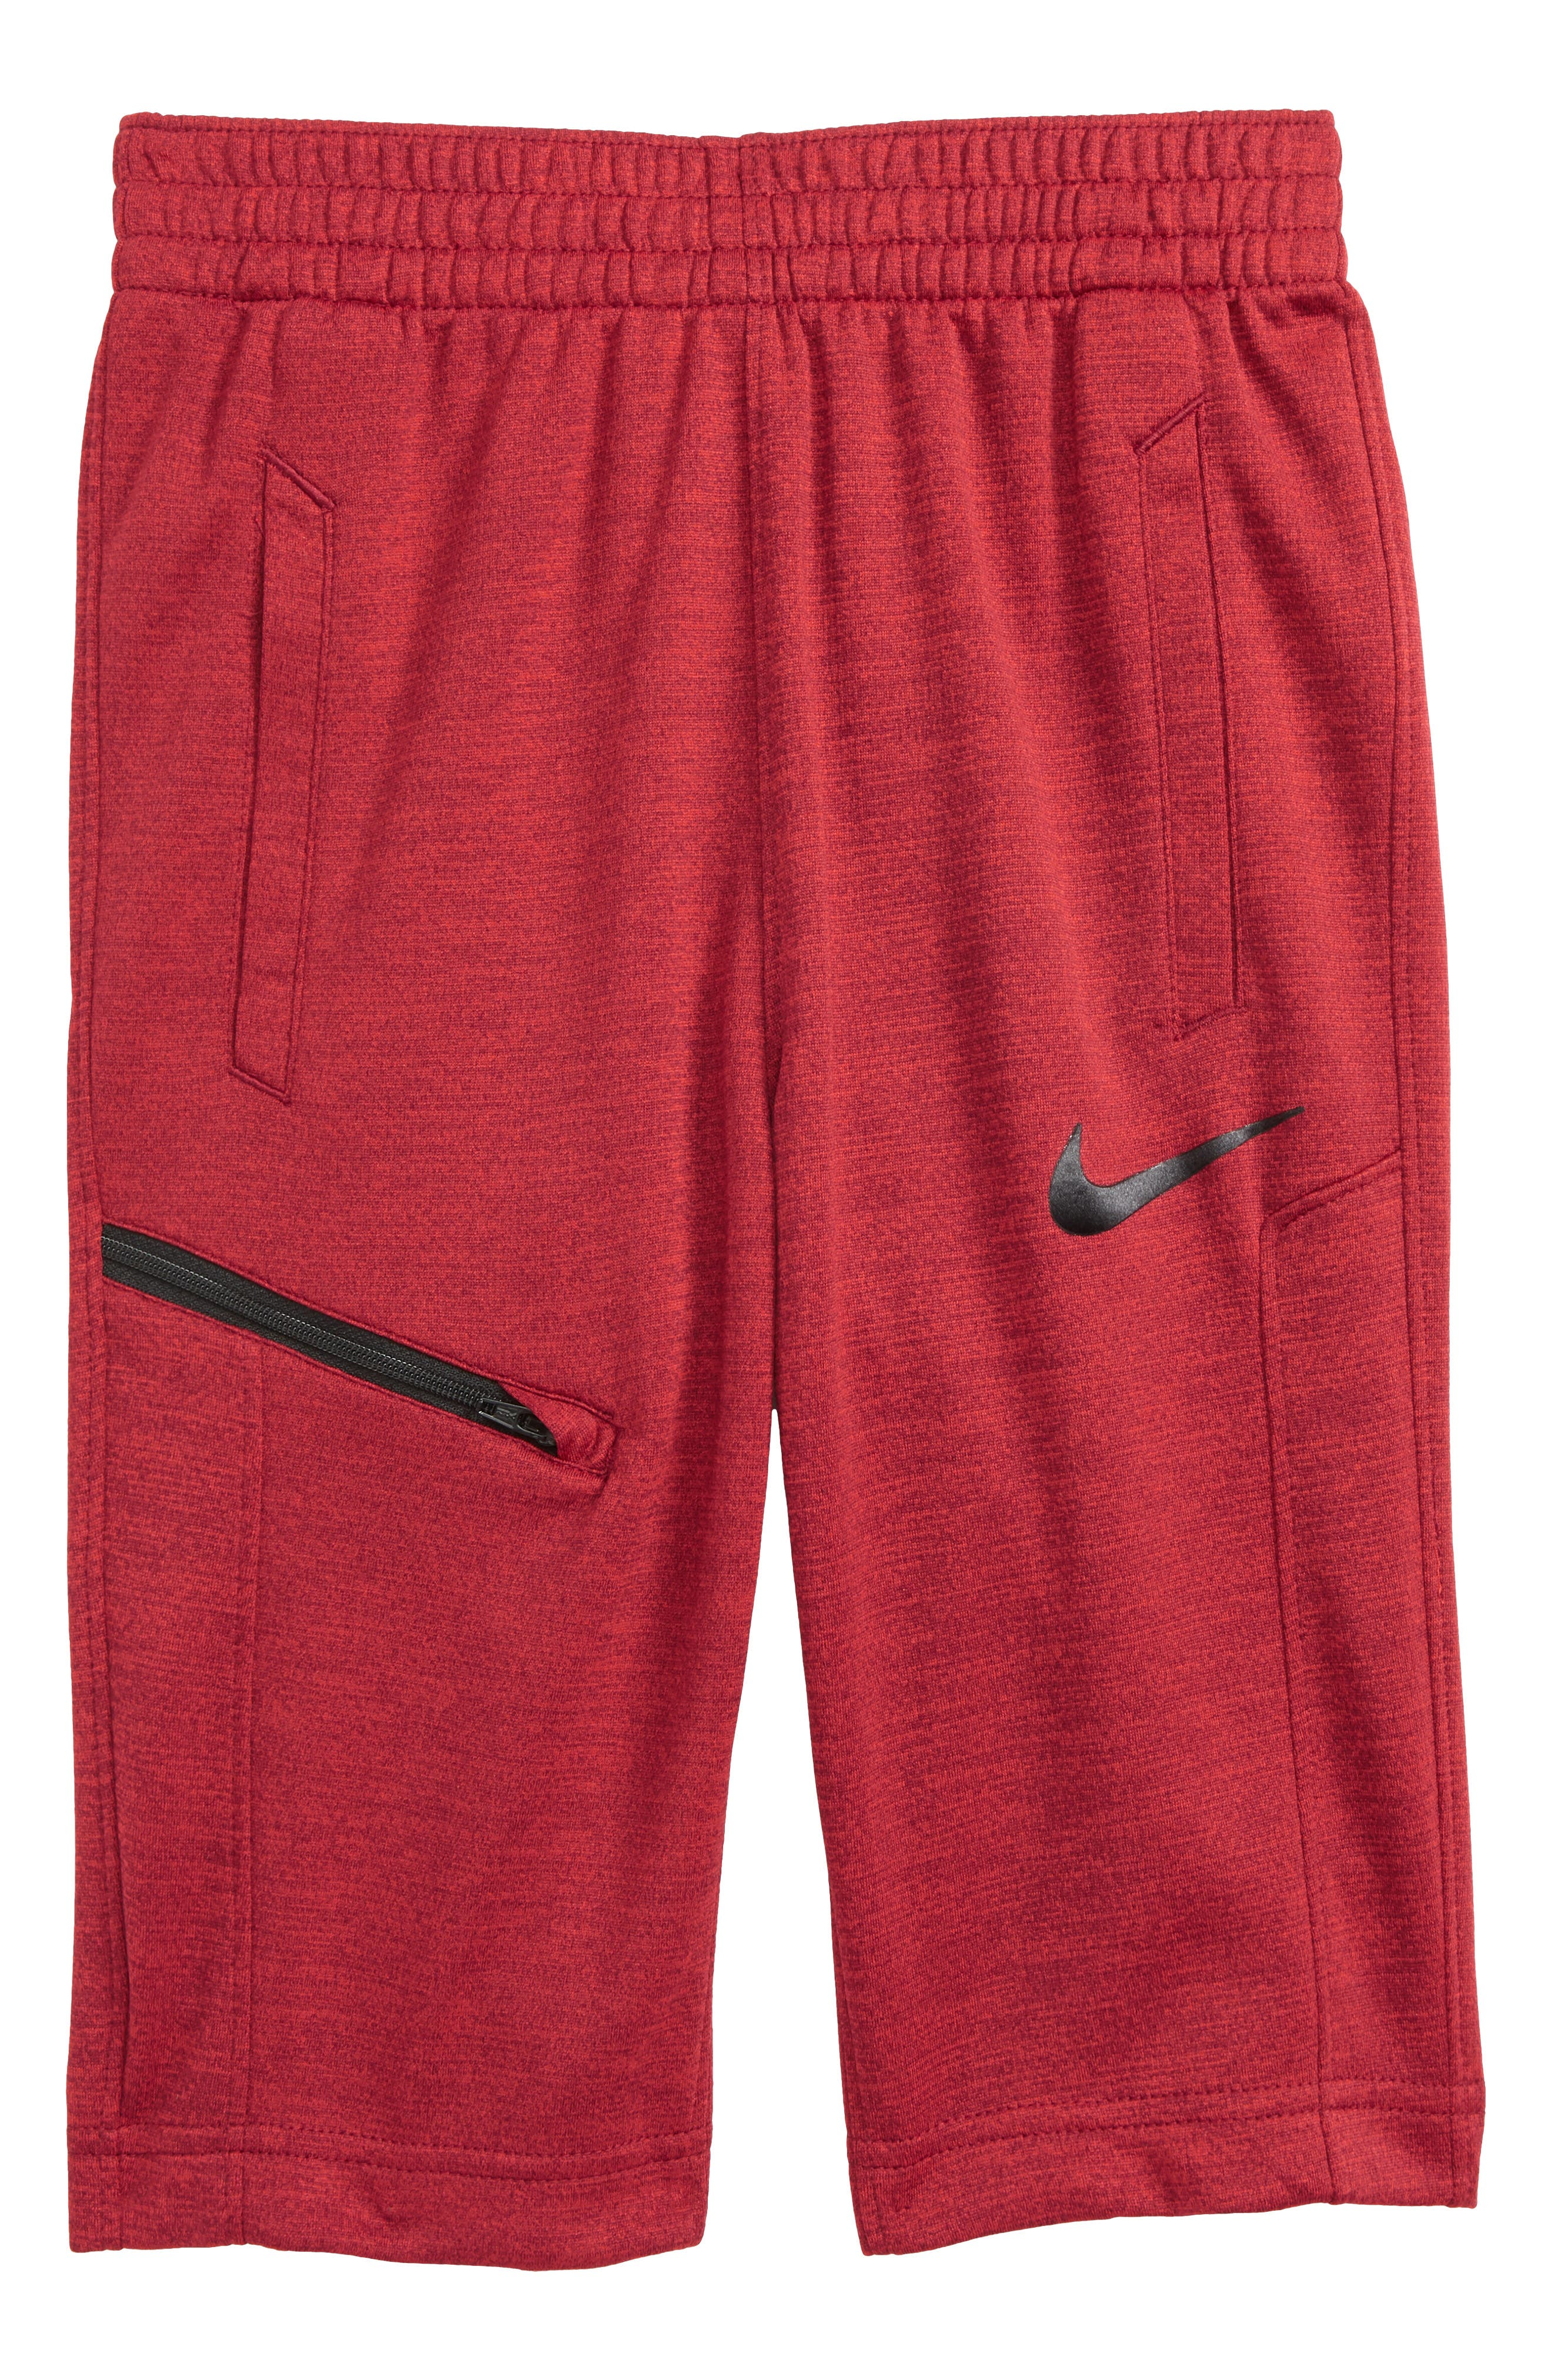 Hangtime Shorts,                         Main,                         color, University Red/ Black